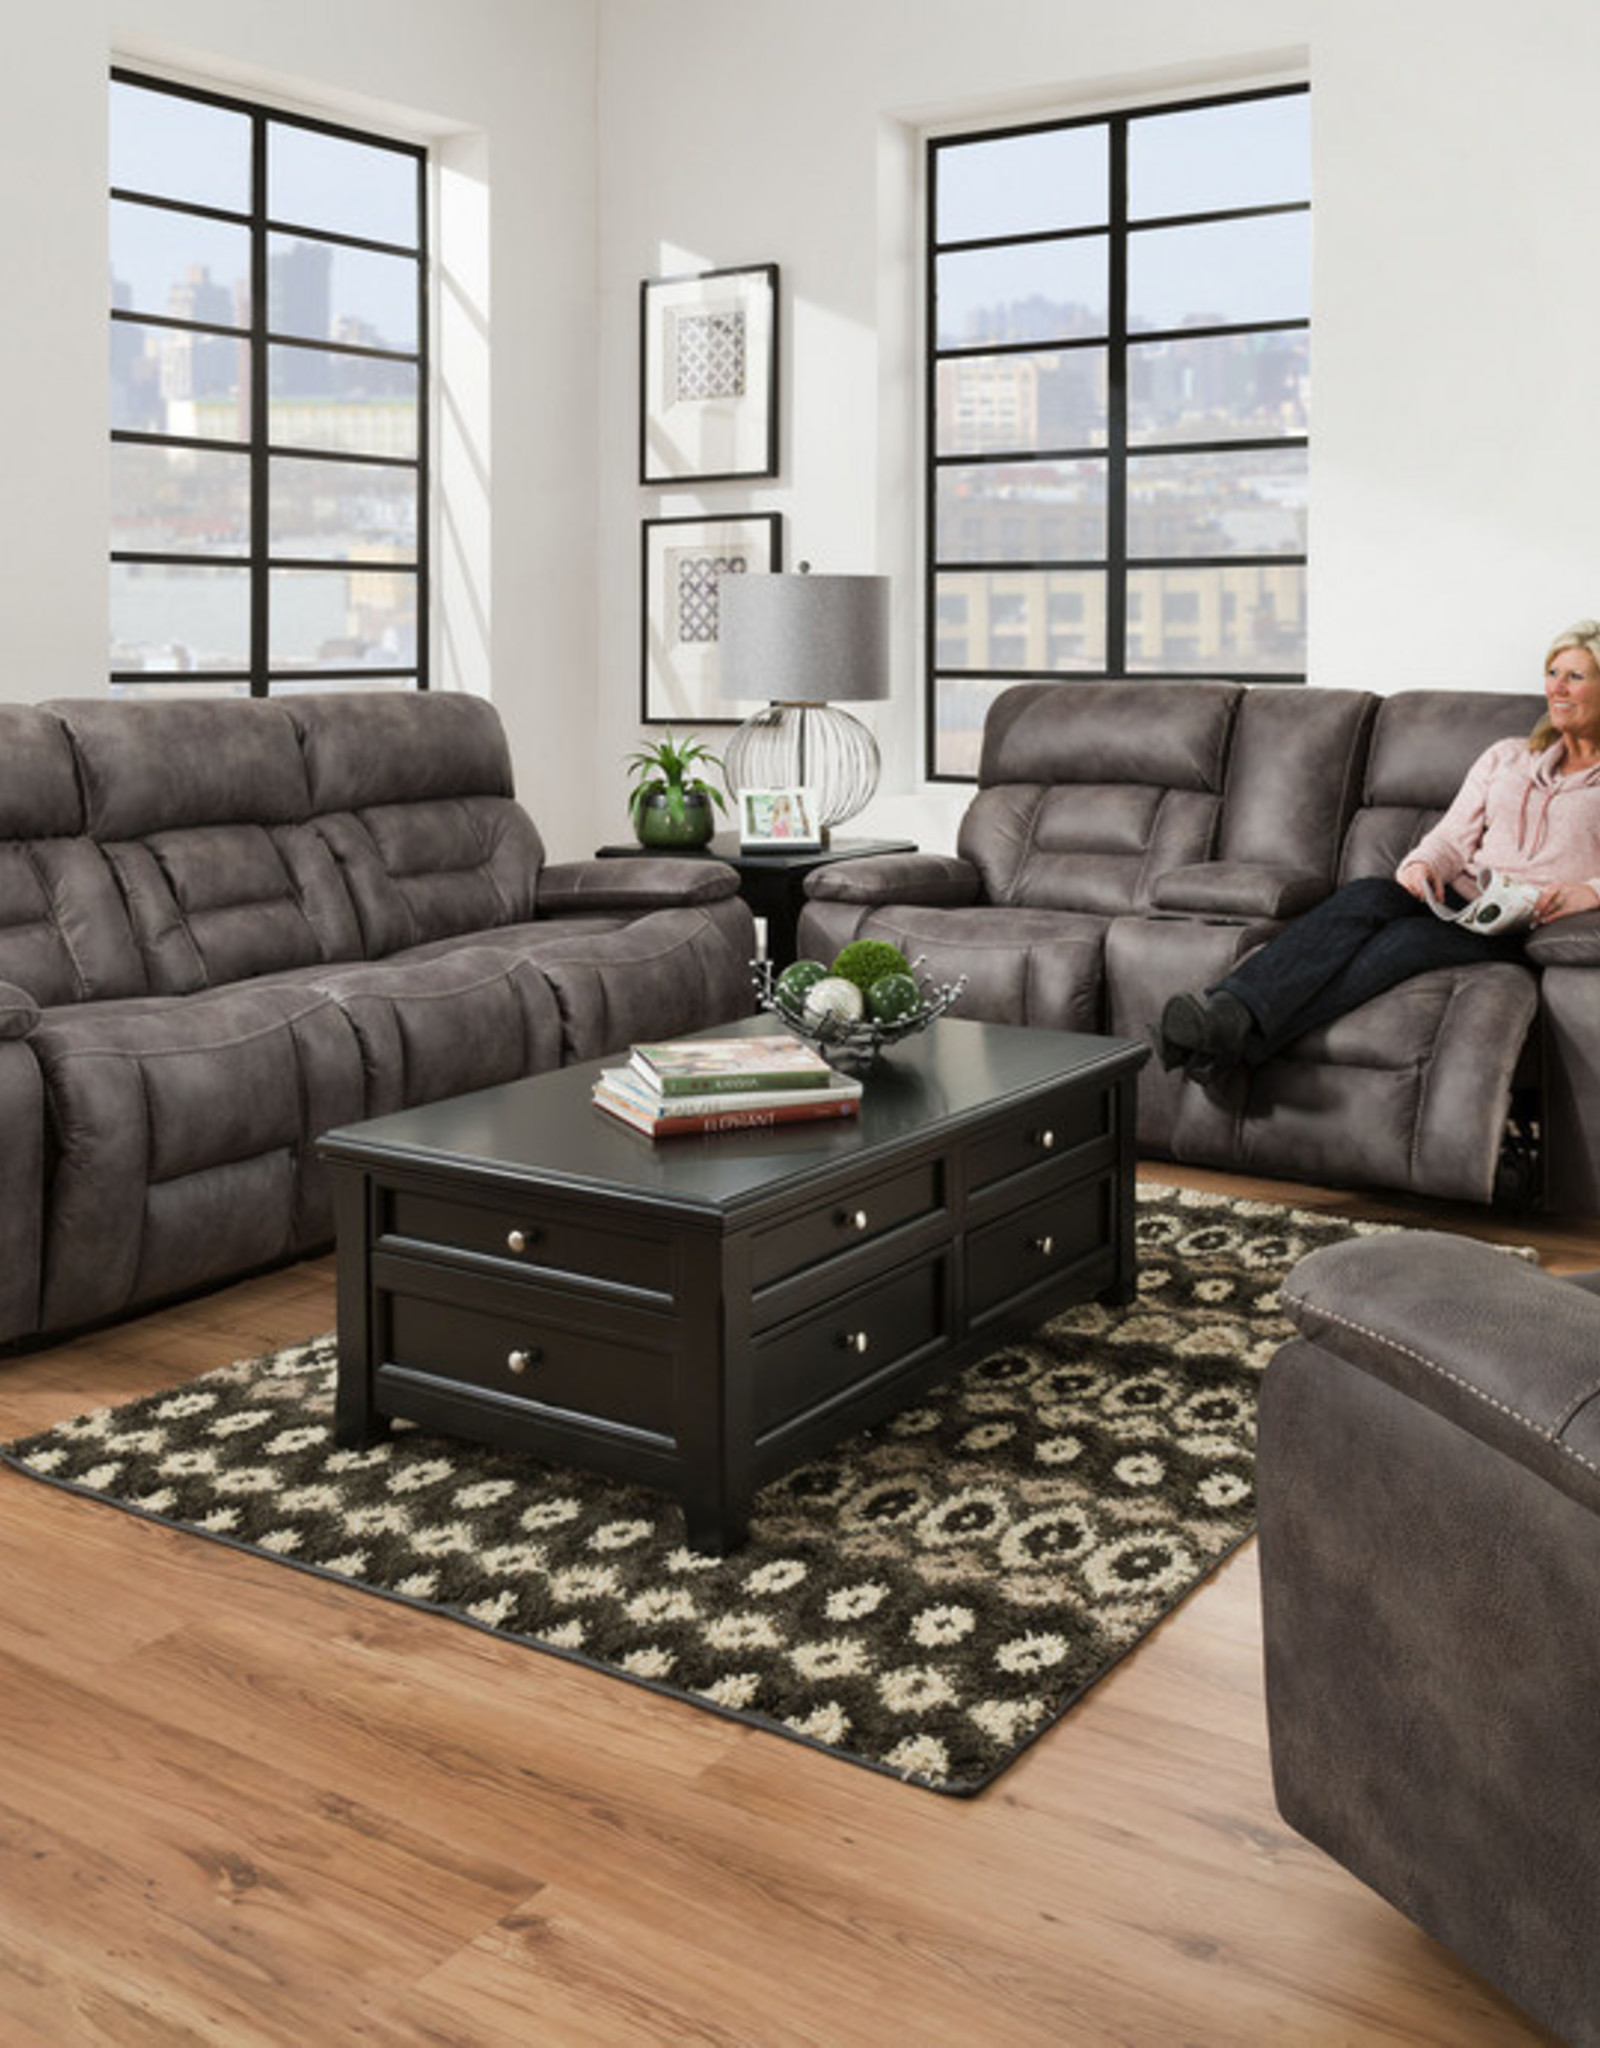 Picture of: Dorado Charcoal Dual Reclining Sofa And Love Seat Set No Power Bargain Box And Bunks